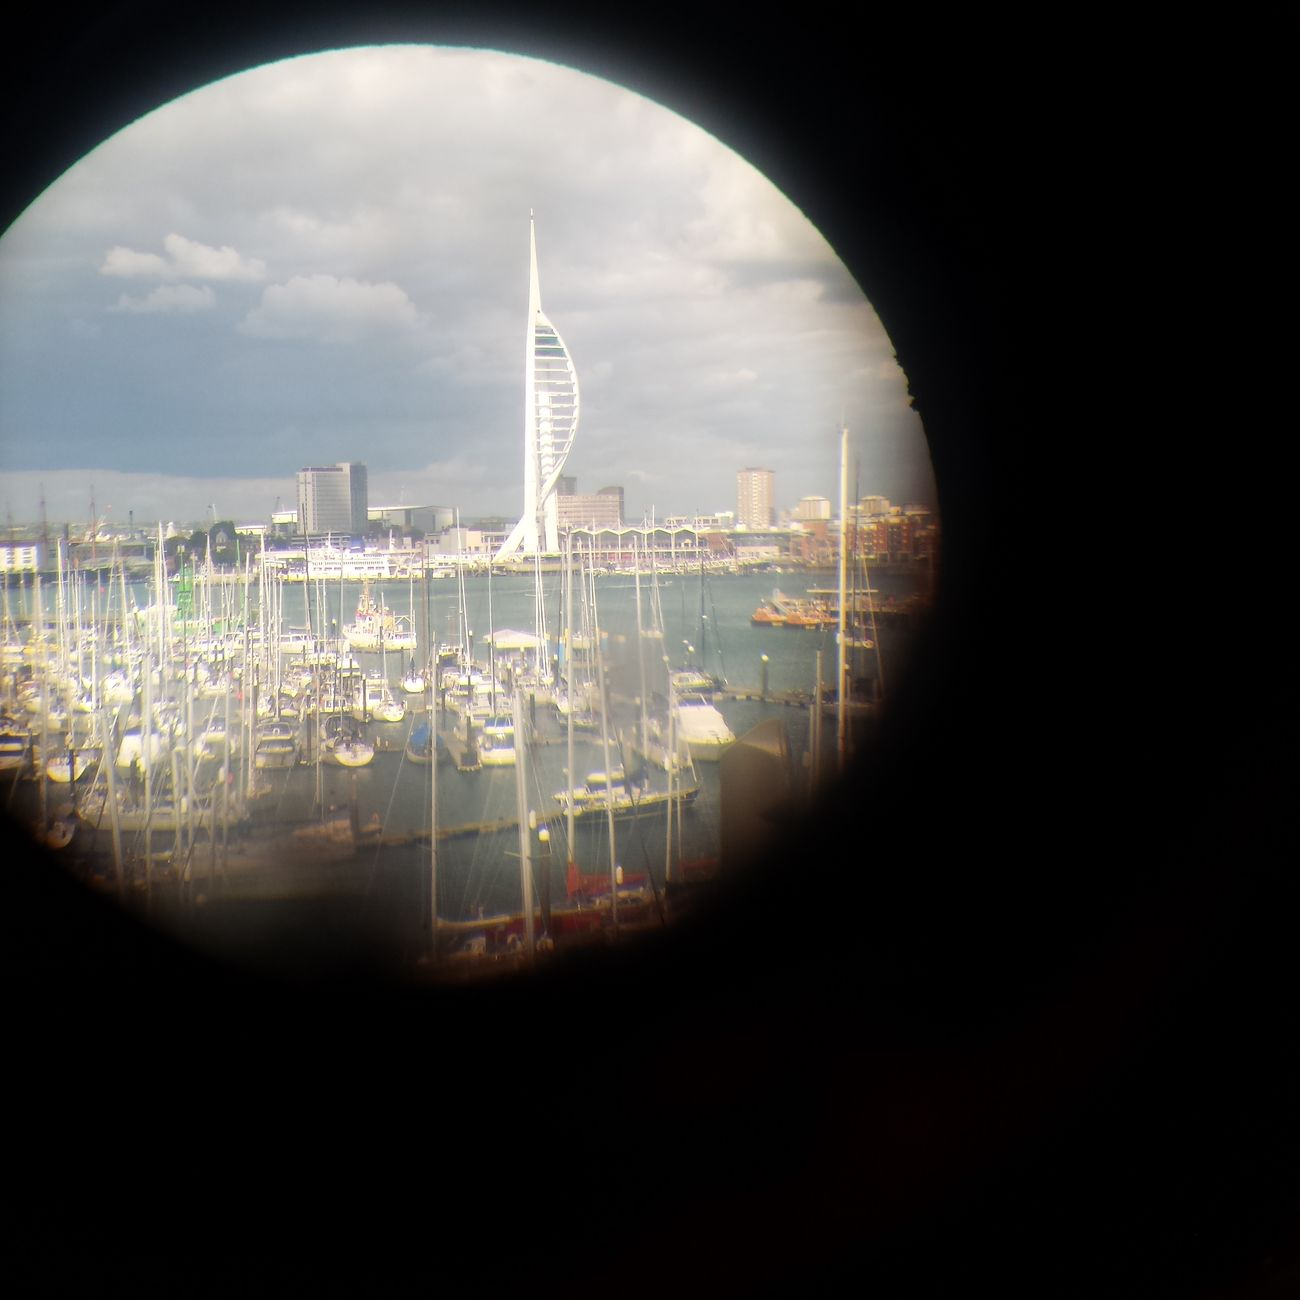 Looking Through A Periscope Built Structure City Architecture Tower Portsmouth Harbour Millenium Tower Spinnaker Tower Gosport Submarine Hms Alliance EyeEm Best Shots EyeEm Gallery